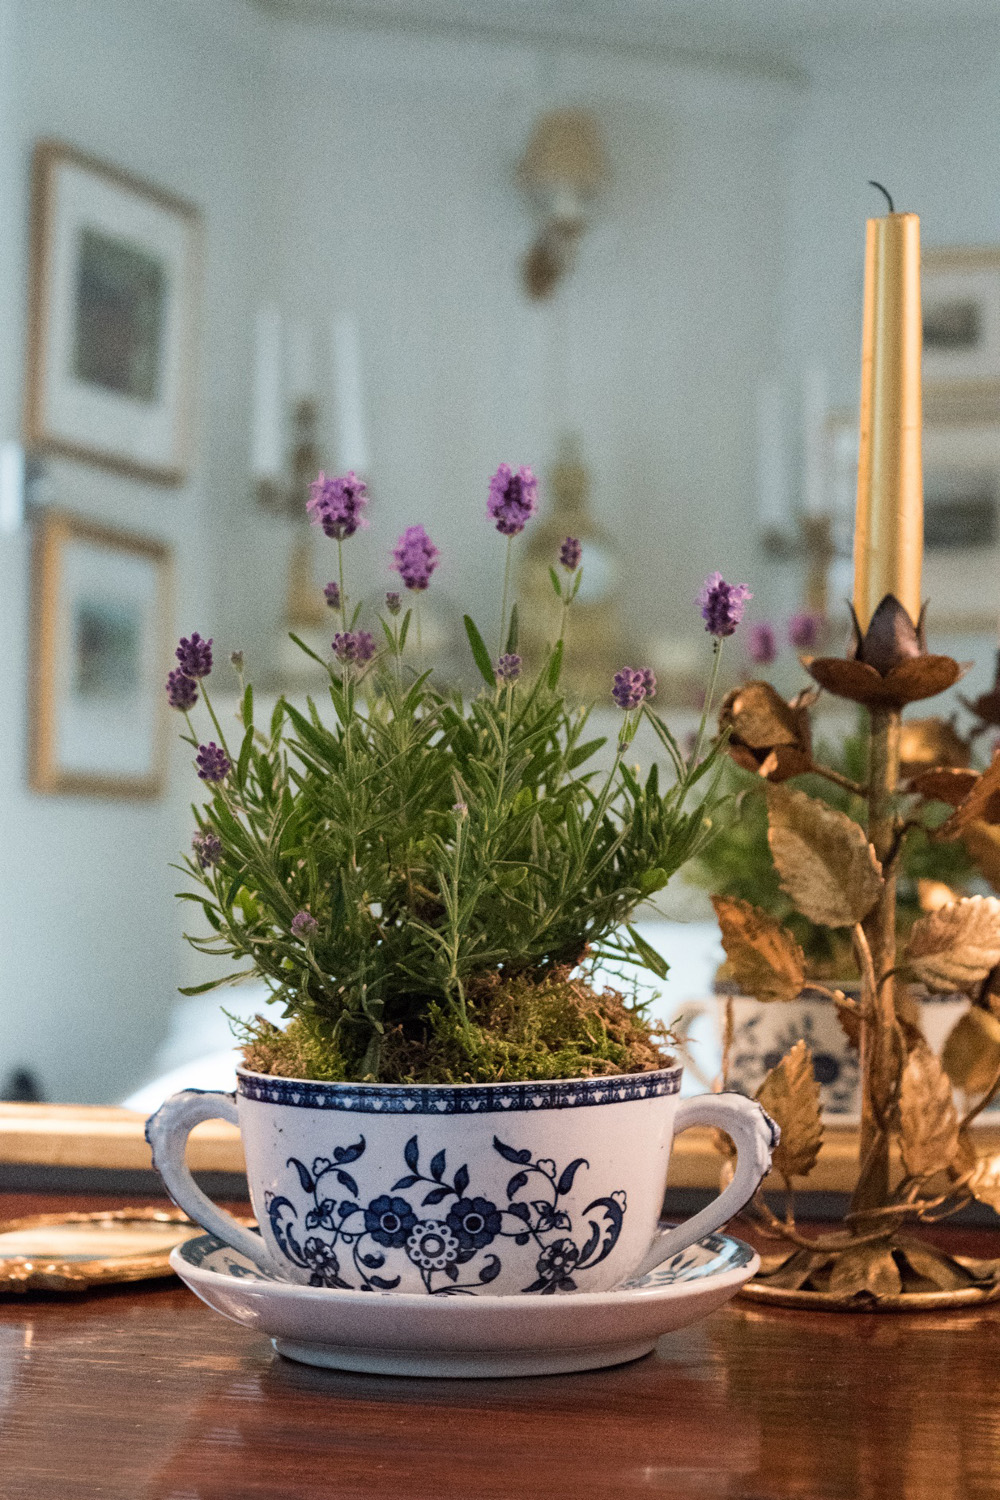 Jenny blanc Blog - Teacup Planter